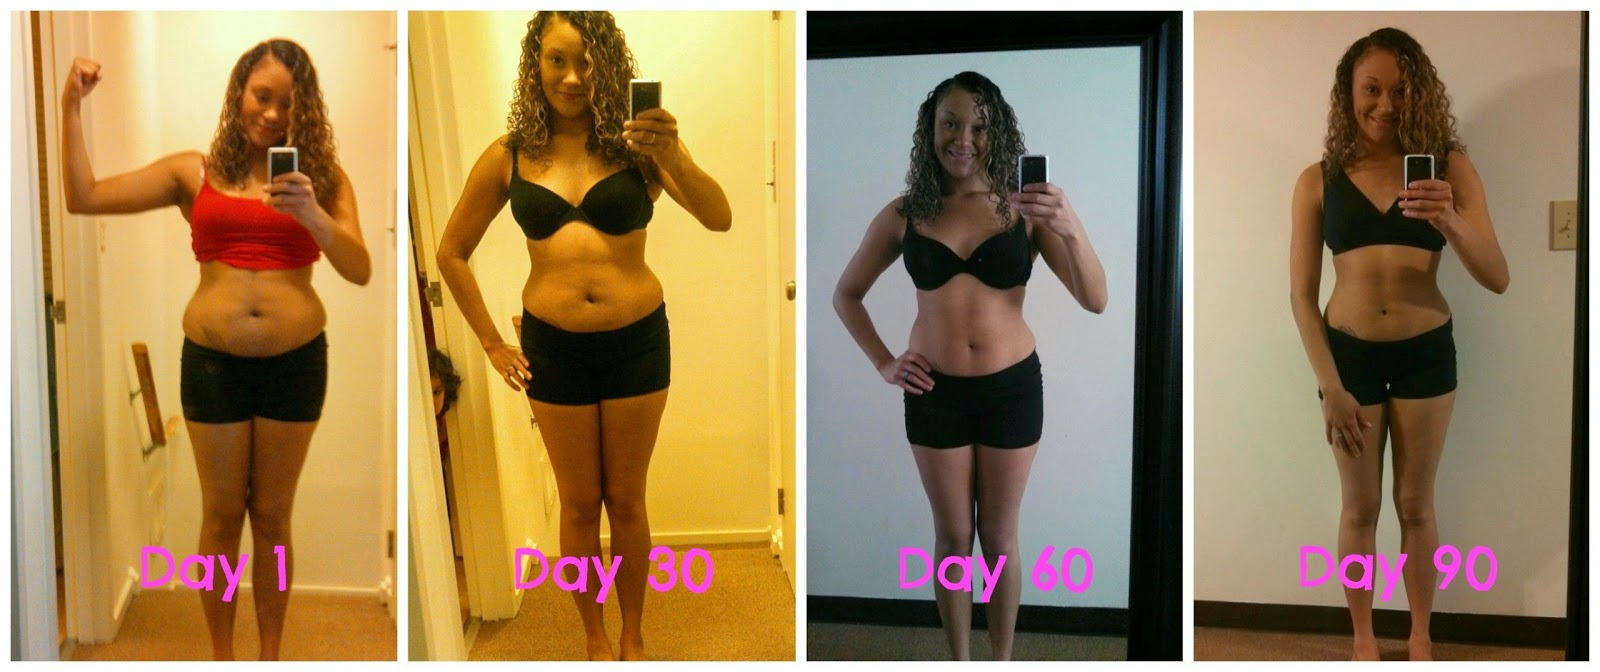 Deidra Penrose, home fitness programs, Beach body coach, 7 star elite beach body coach, weight loss program, fitness motivation, weight loss, clean eating, Shakeology, Focus T25 results, 21 day fix results, 21 day fix transformation, Shakeology results, Shakeology, health and fitness coach, Turbo Fire results, top coach, clean eating, Pittsburgh Beachbody coach